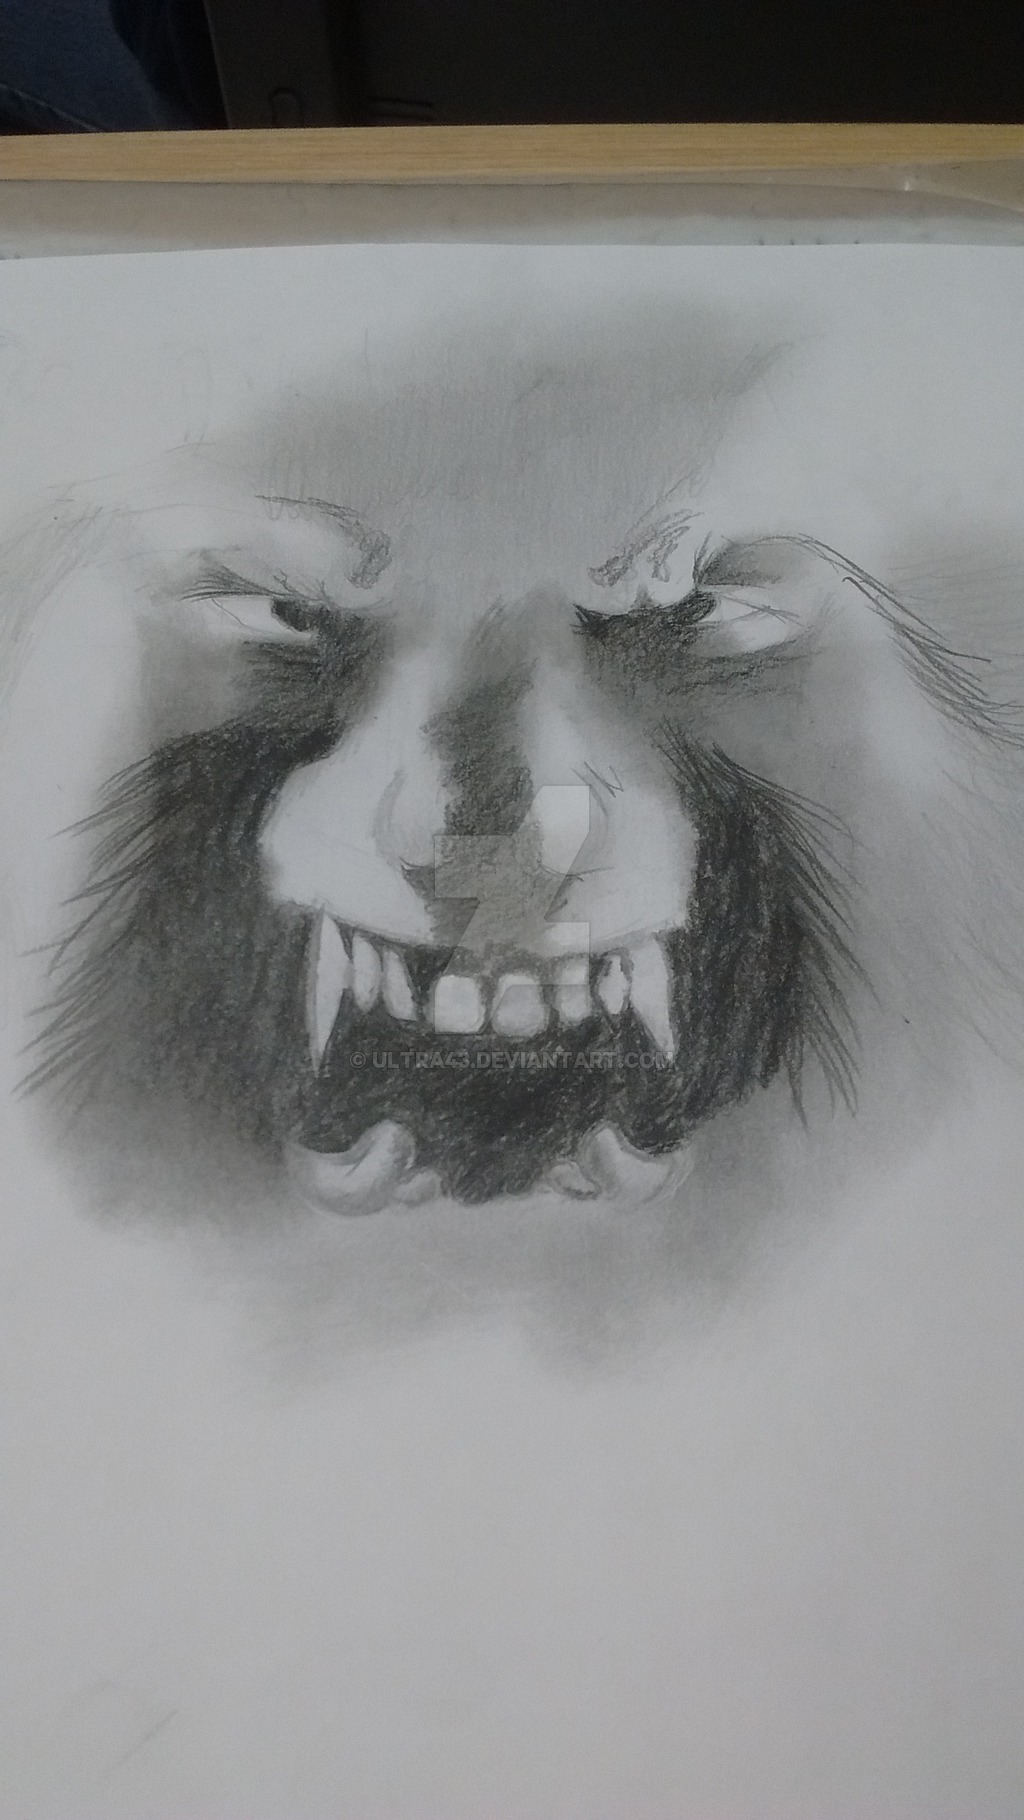 Drawn wolfman eye Ultra43 The by ultra43 by